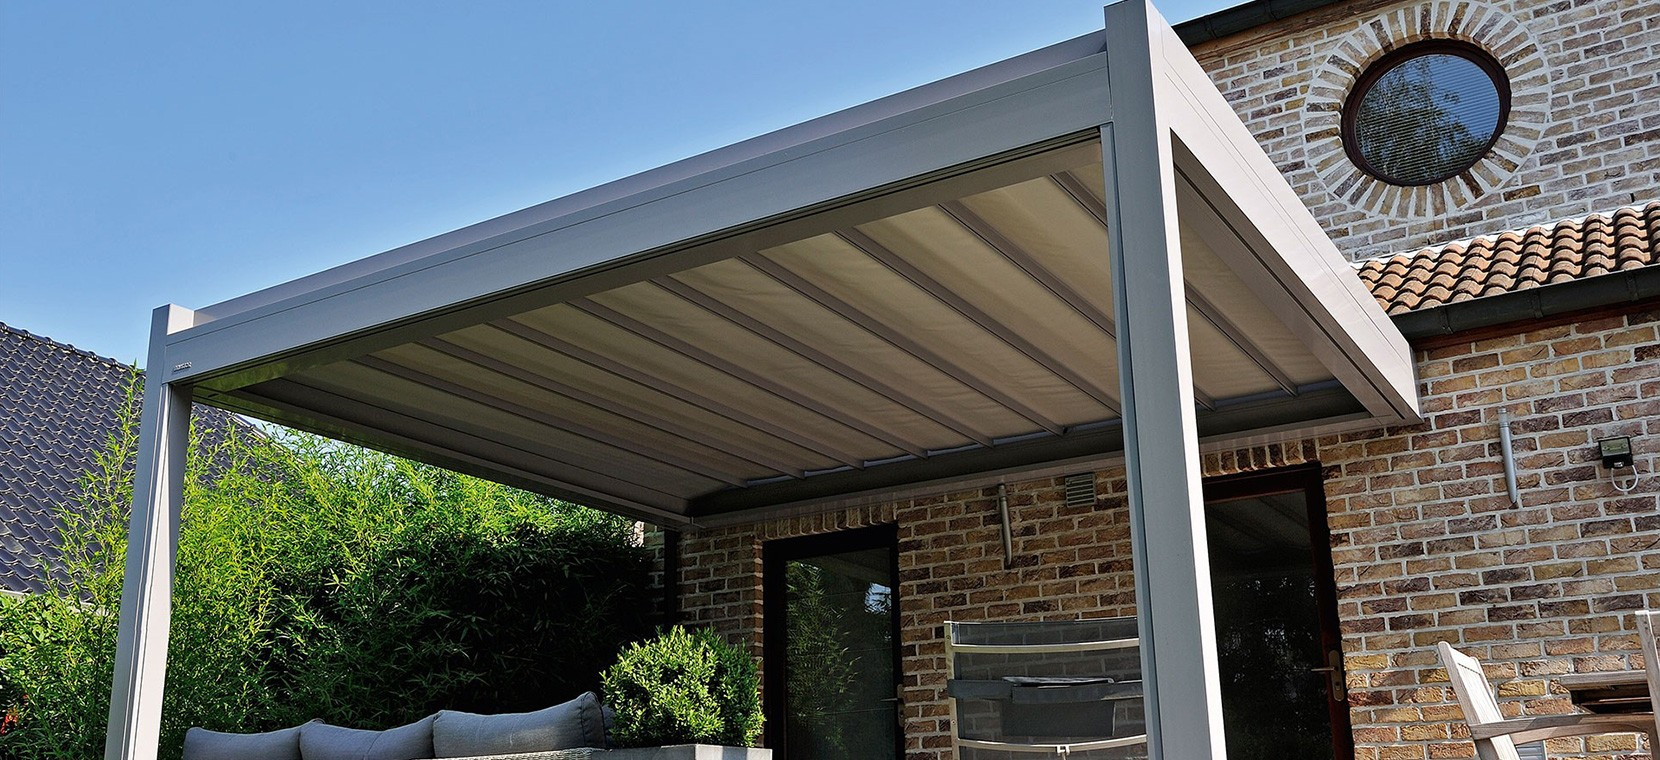 Patio cover lean-to louvered roof